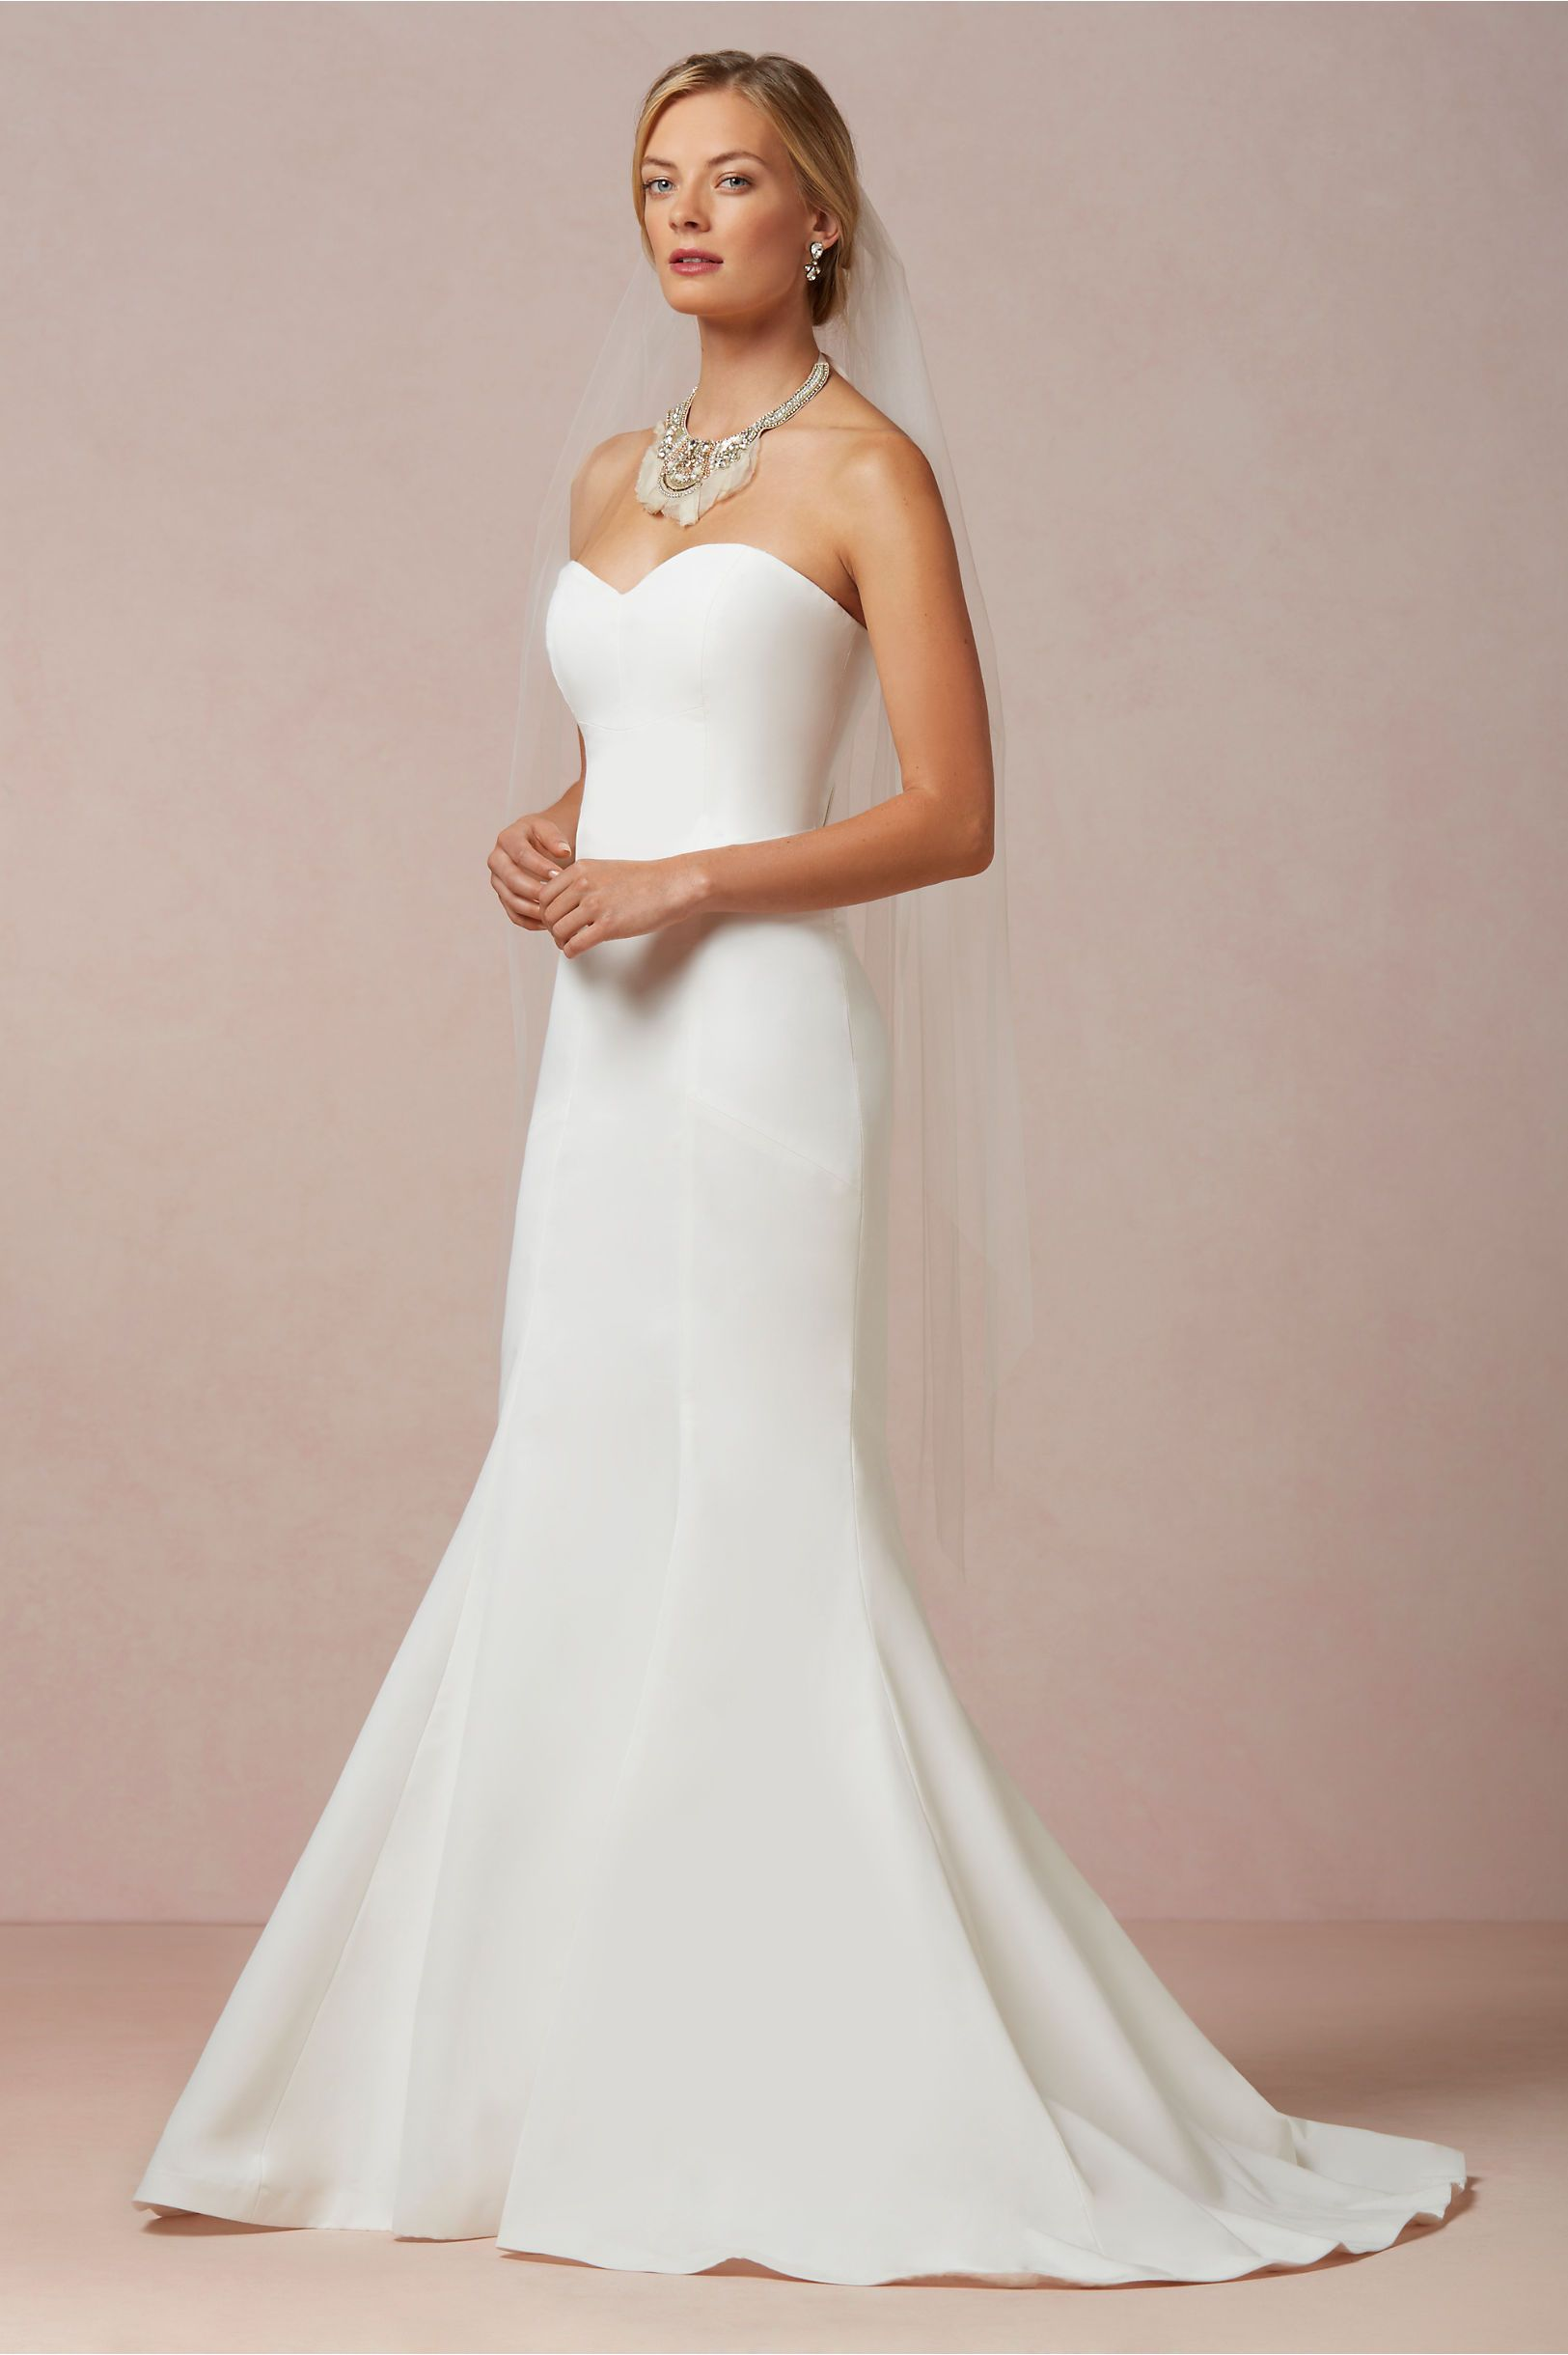 Timeless wedding dresses  BHLDNus Nicole Miller Dakota Gown in Snow  Beautiful gowns Gowns